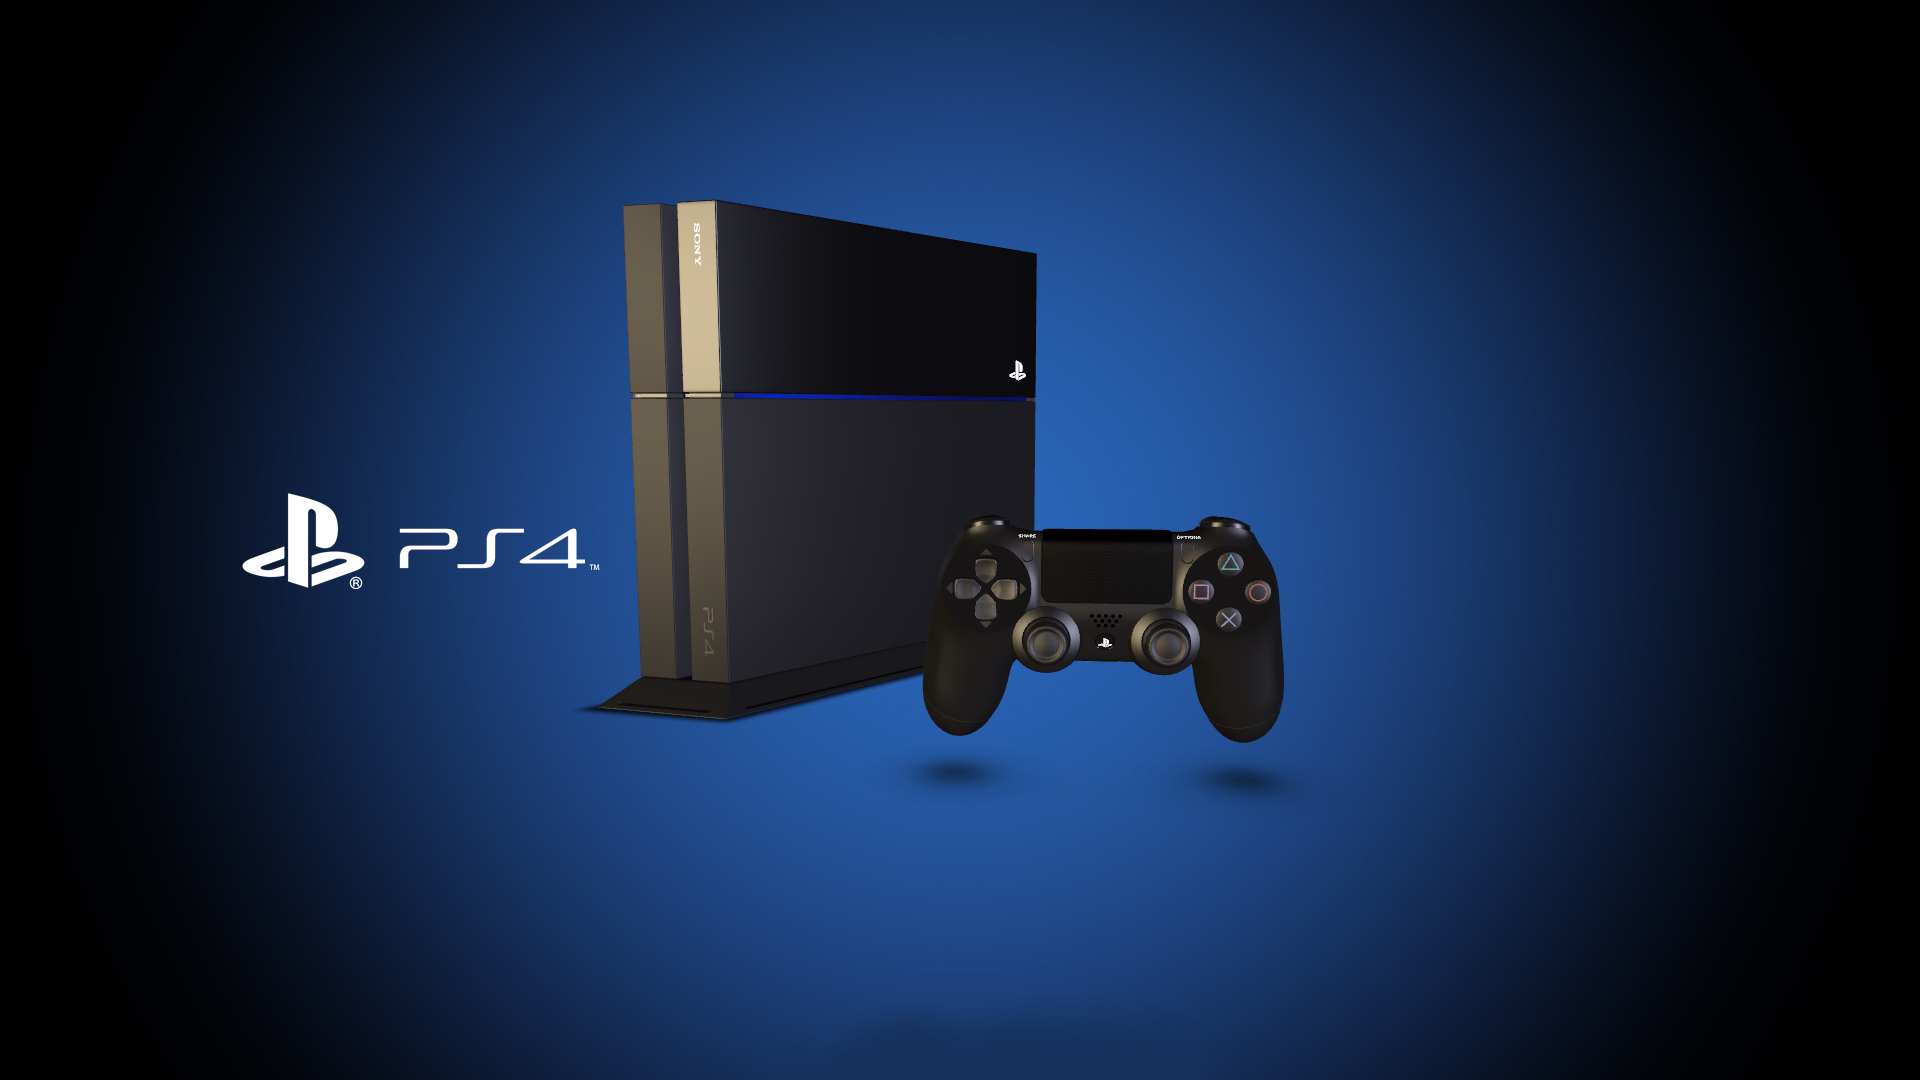 Playstation 4 Wallpaper 1920x1080 67735